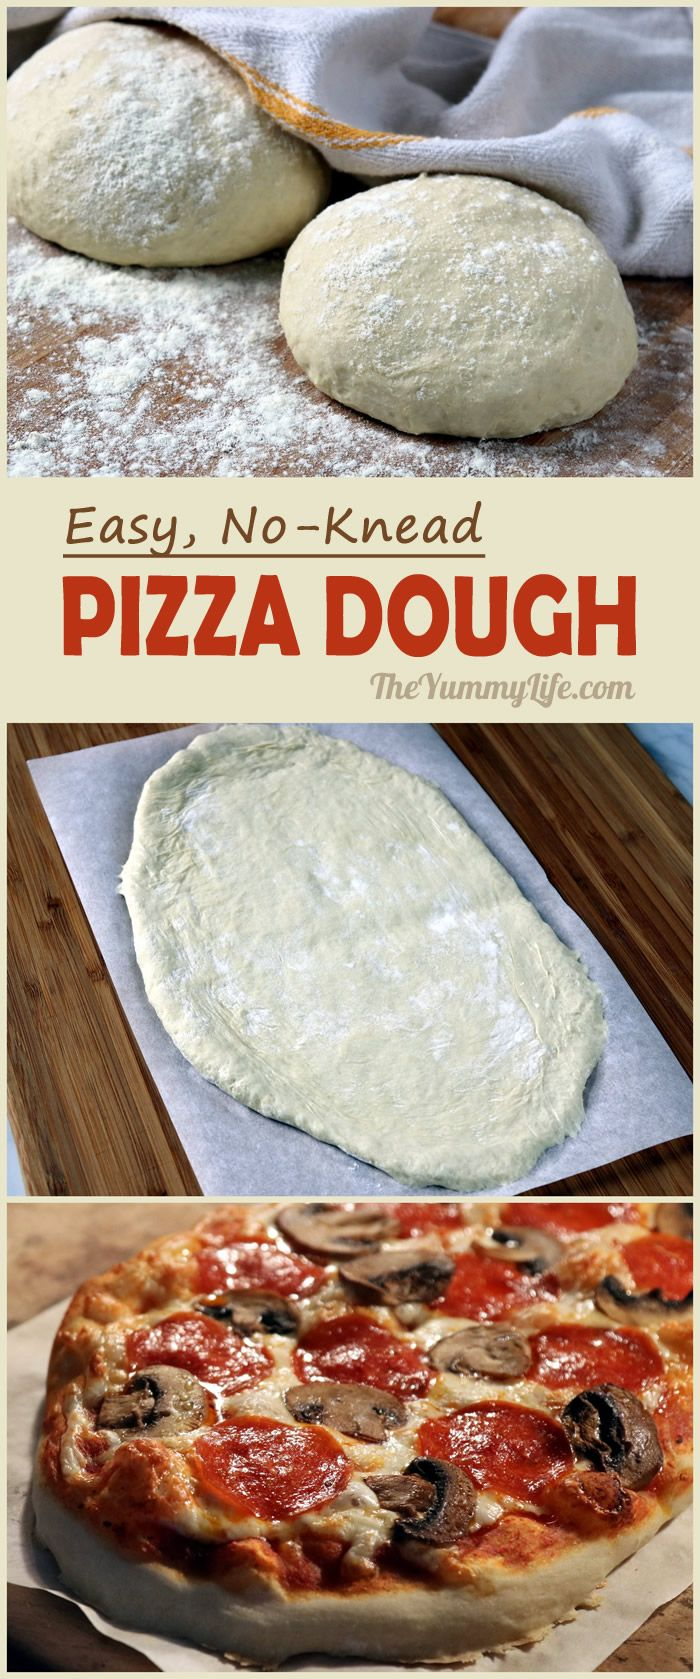 No-Knead Pizza Dough | Make Authentic Italian Pizza at Home